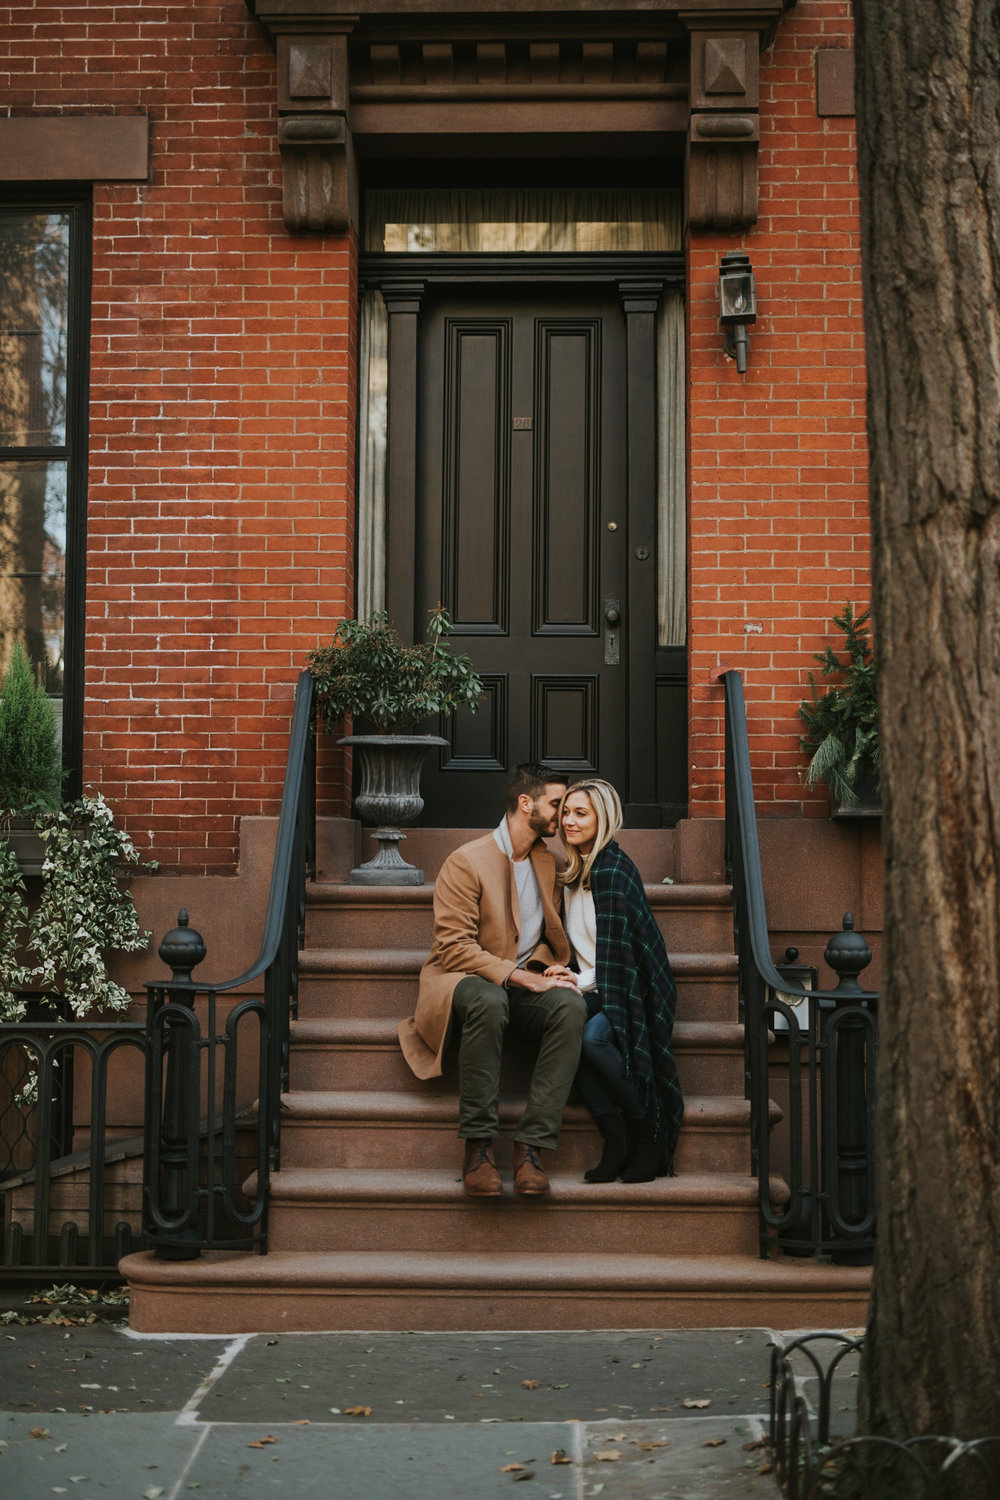 Colorful Fall NYC Engagement Session_Polly C Photography 1721151127.jpg